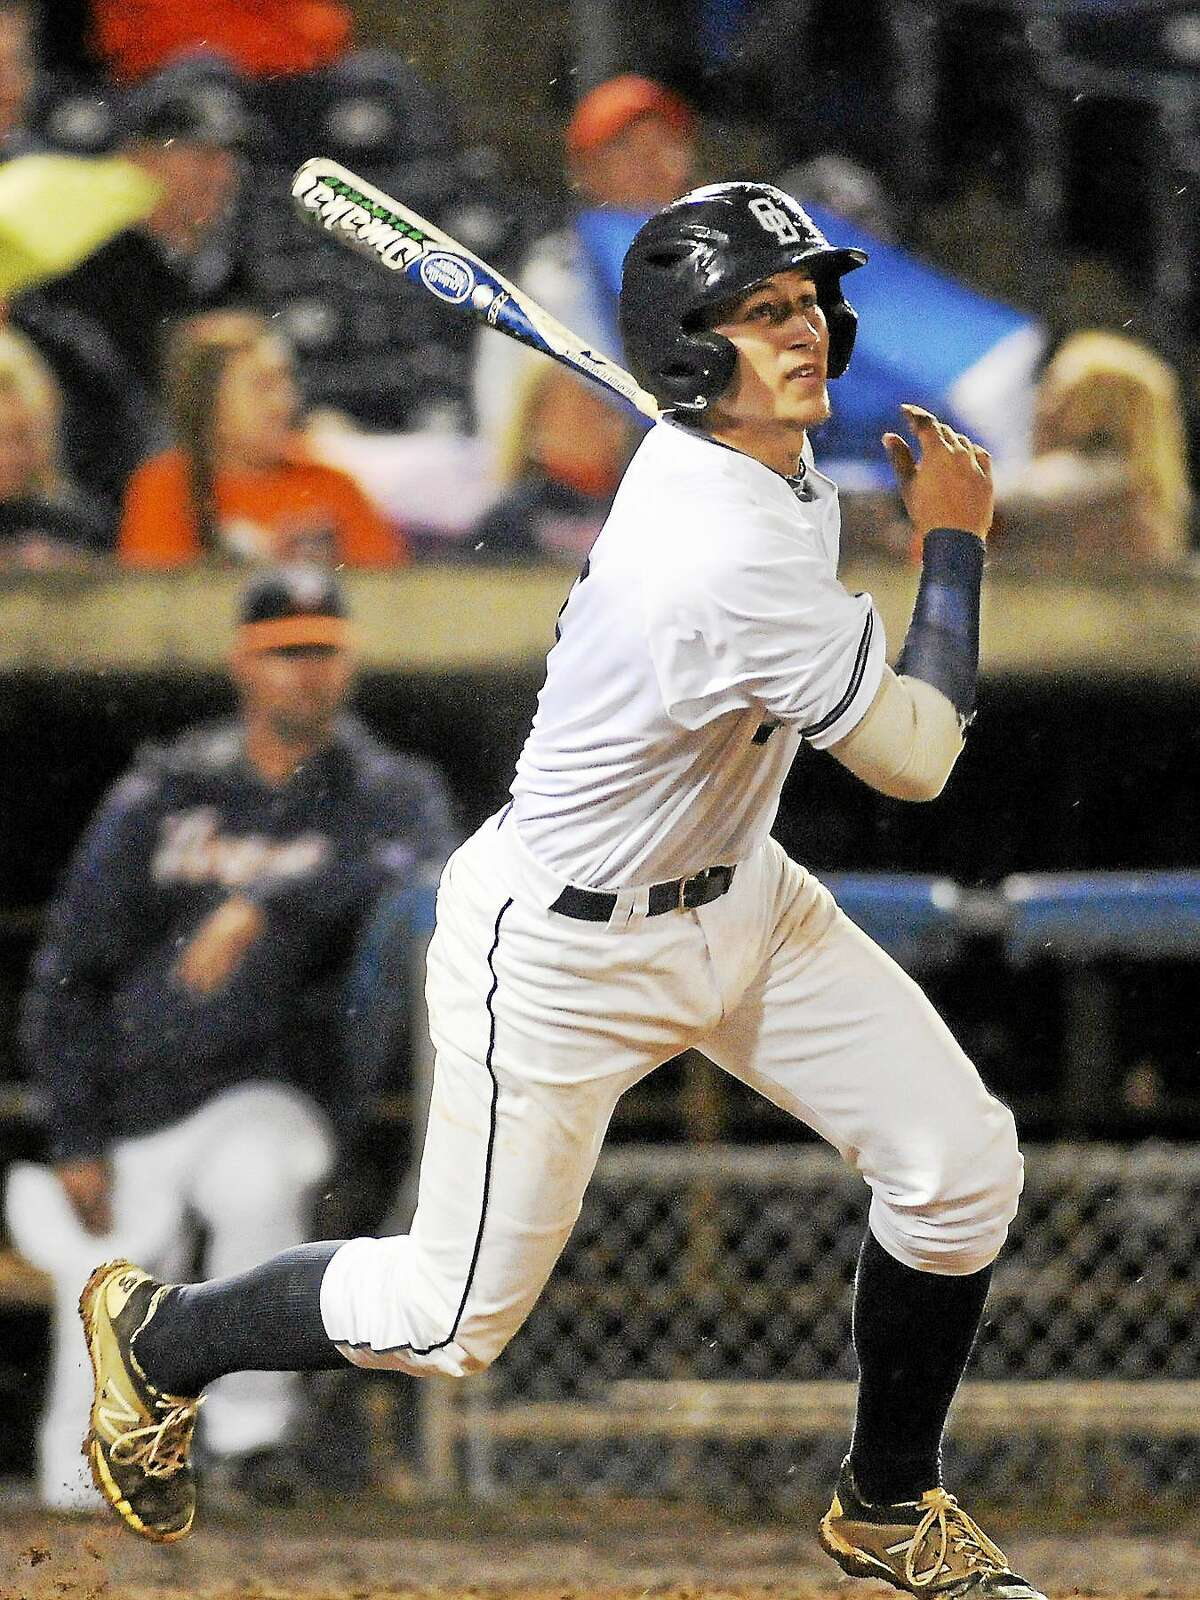 Old Dominion junior second baseman P.J. Higgins of Wallingford was selected in the 12th round of the MLB Draft on Wednesday by the Chicago Cubs.